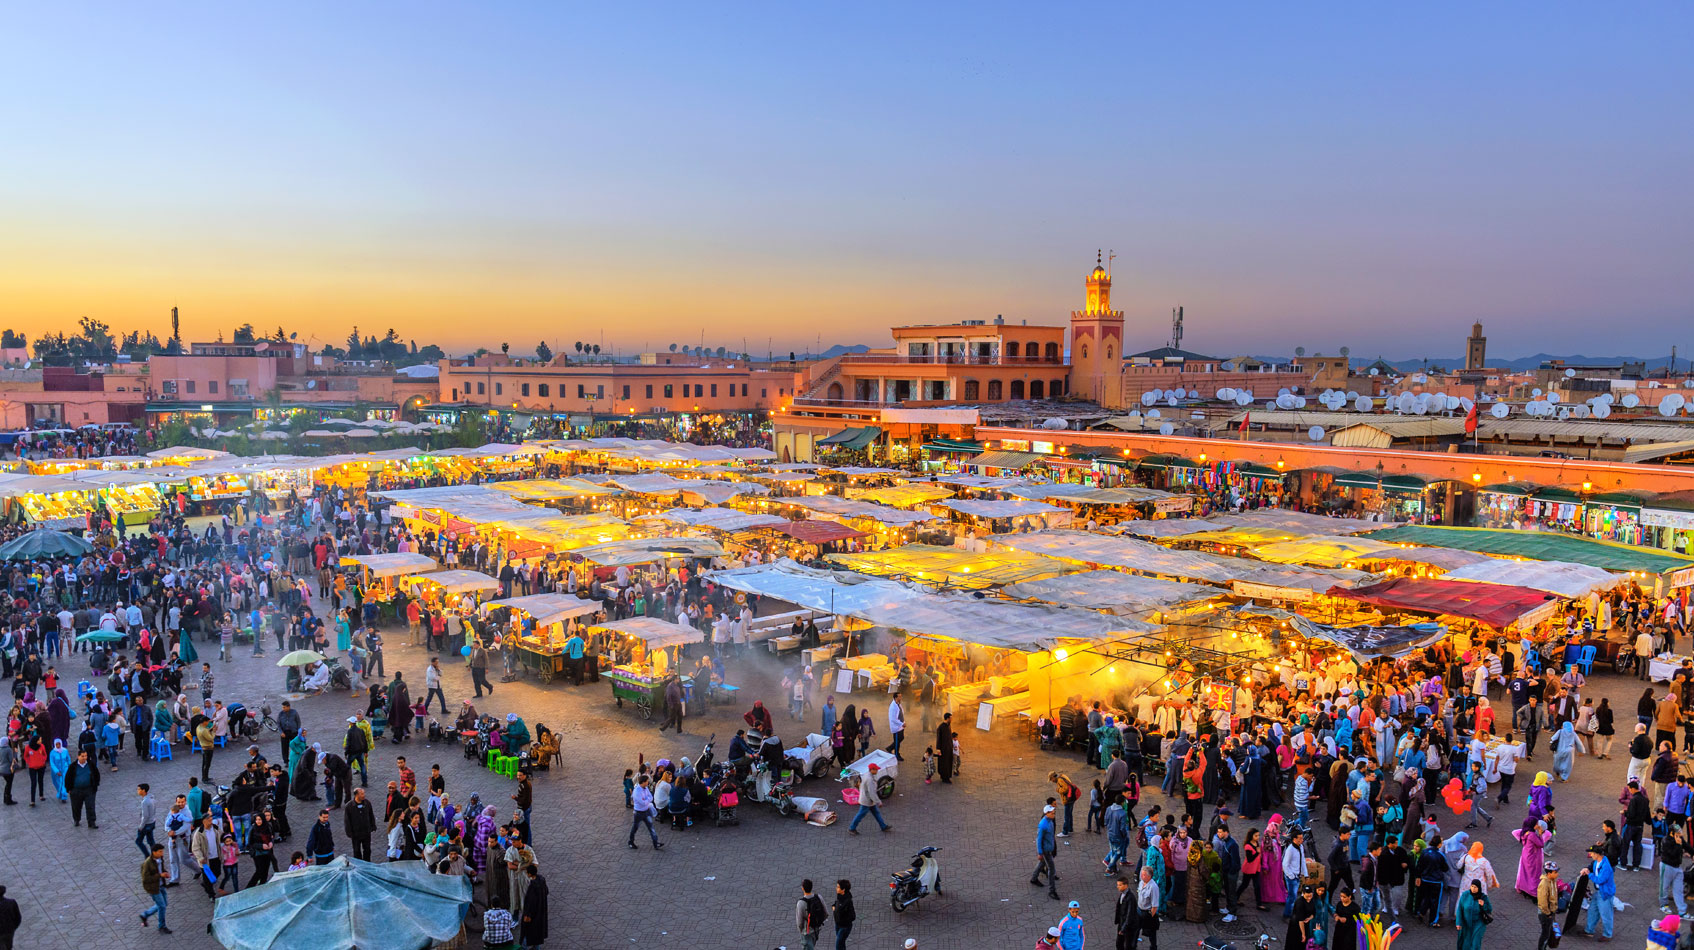 Jemma el'Fnaa, Marrakech, Where to Visit in April